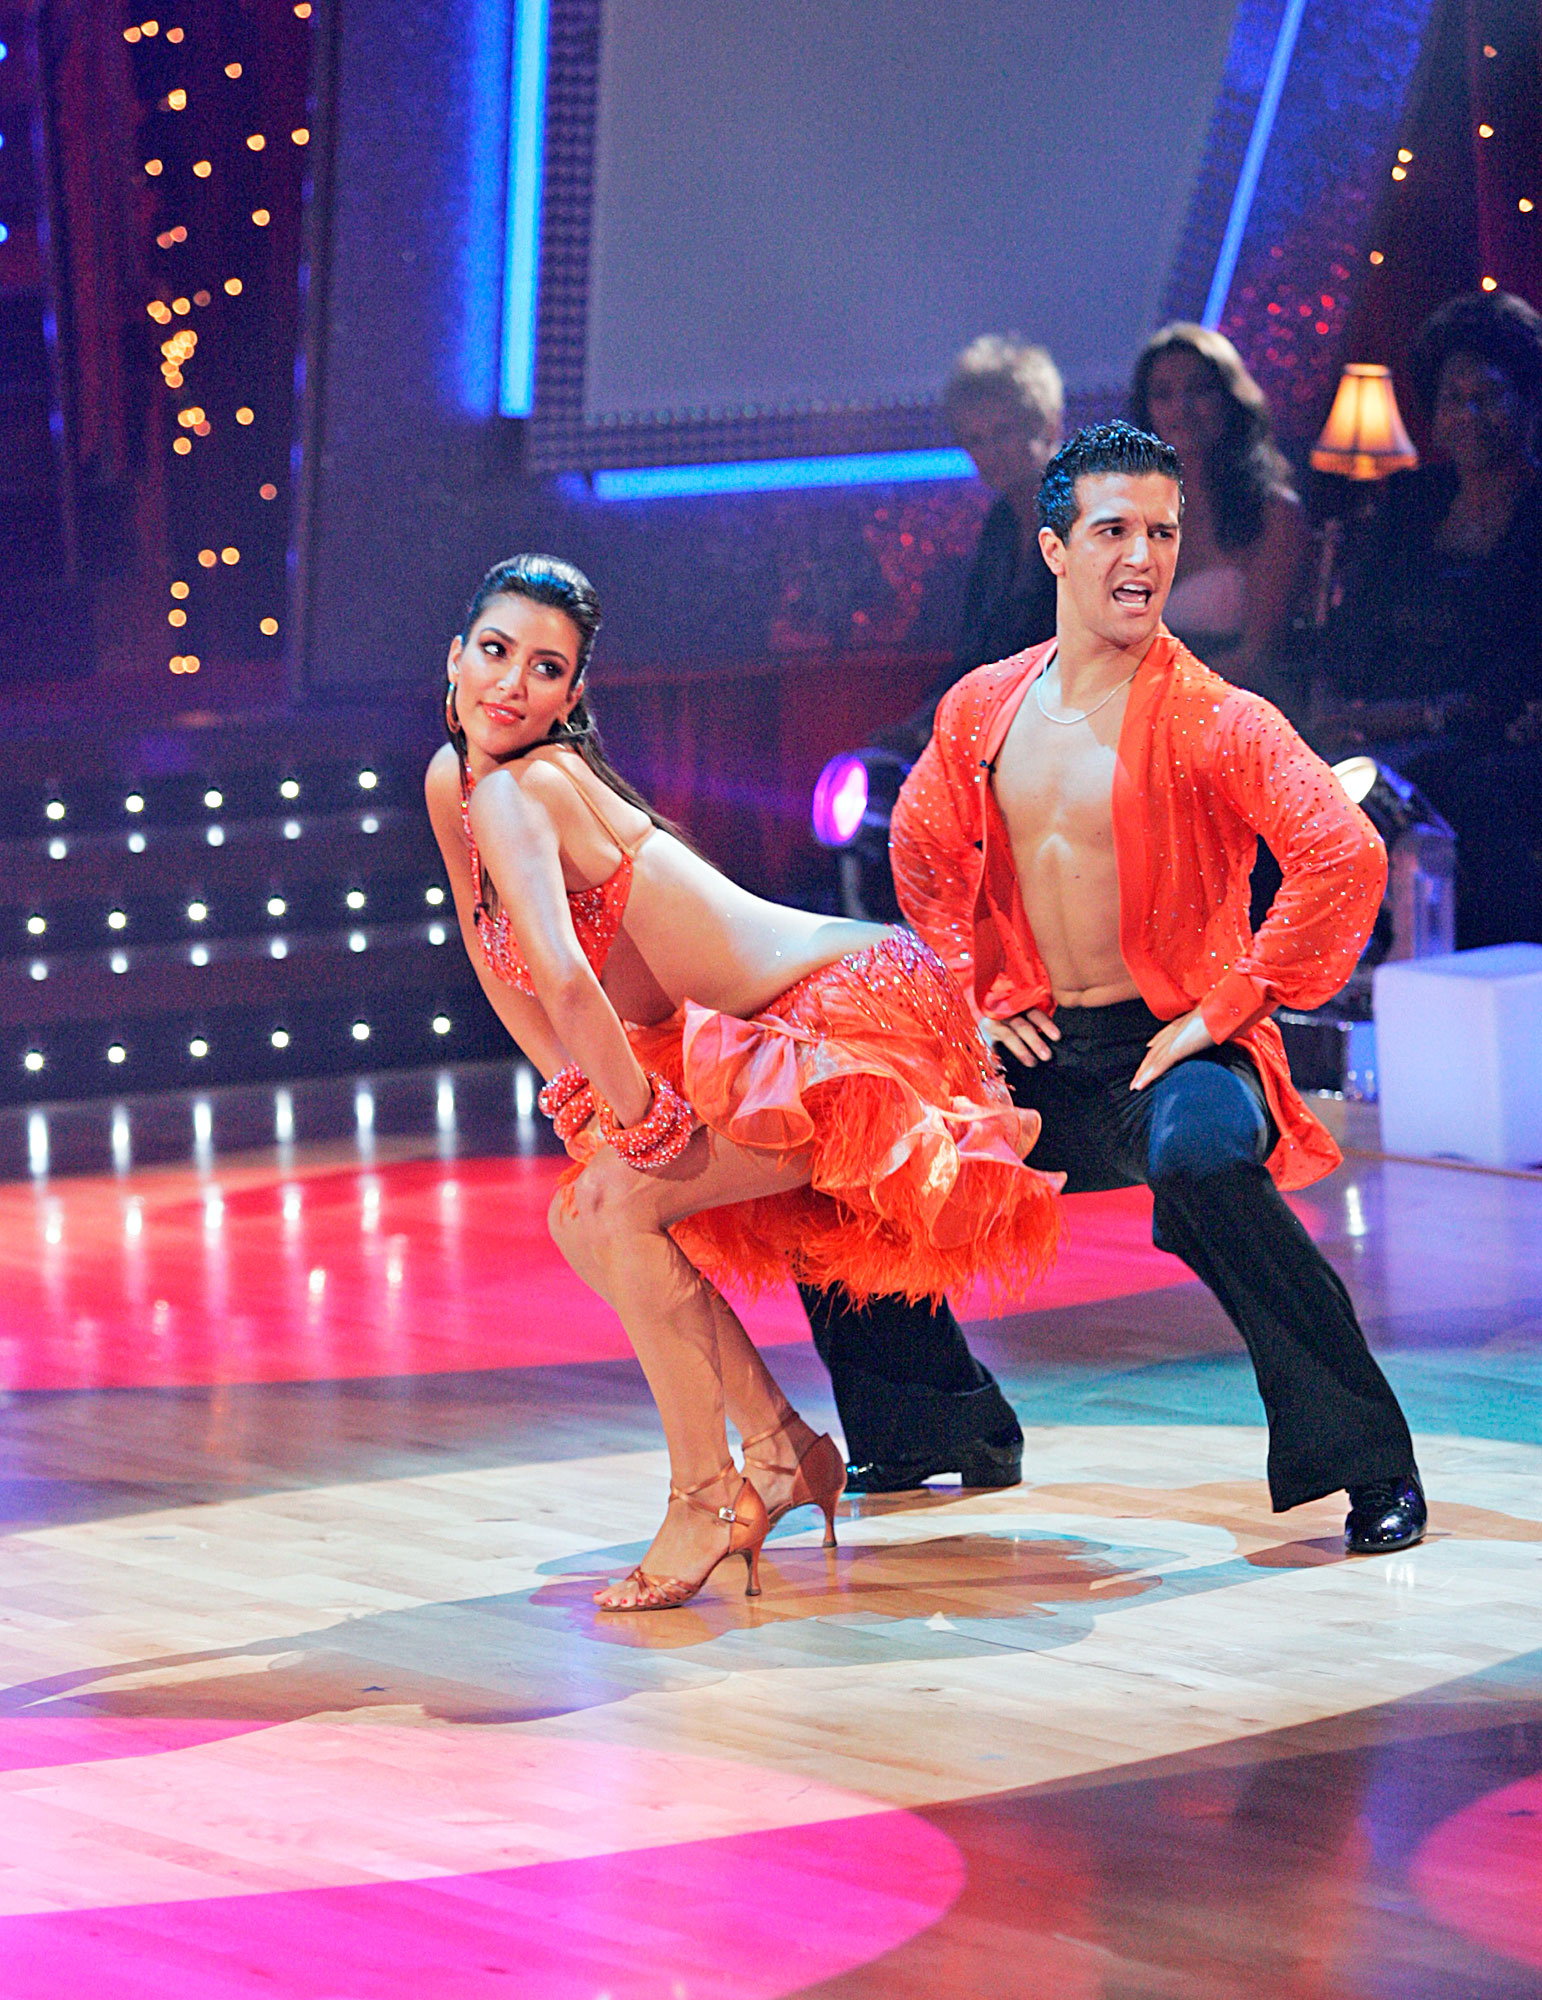 Mark Dancing With The Stars Hookup